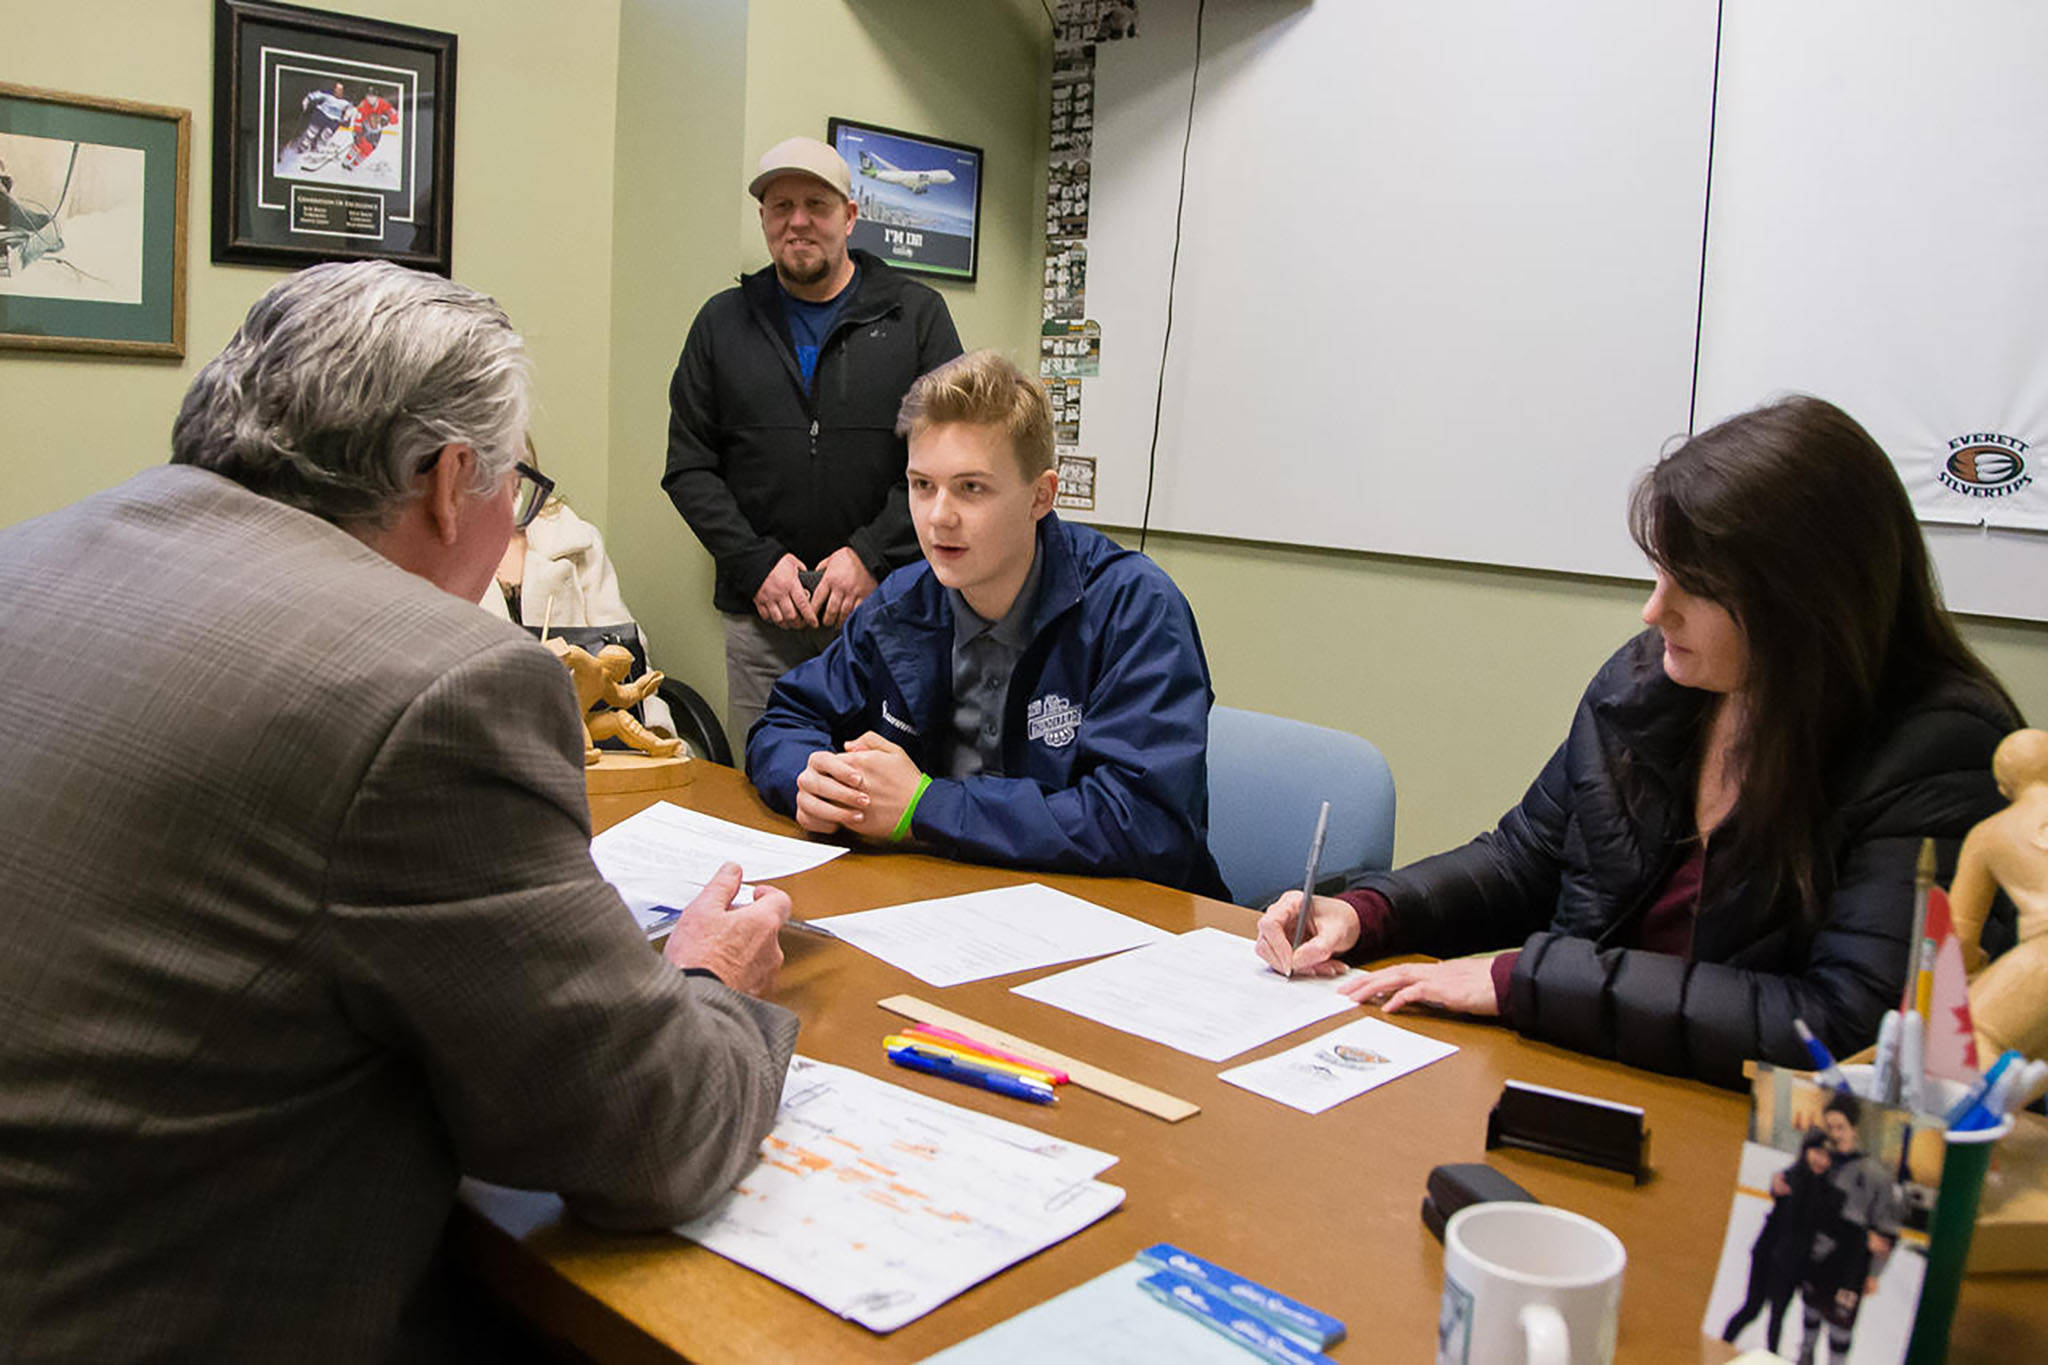 Jacob Wright (center), who signed with the Silvertips on Tuesday, chats with Everett general manager Garry Davidson (left) in his office. (Credit: Chris Mast/Everett Silvertips)